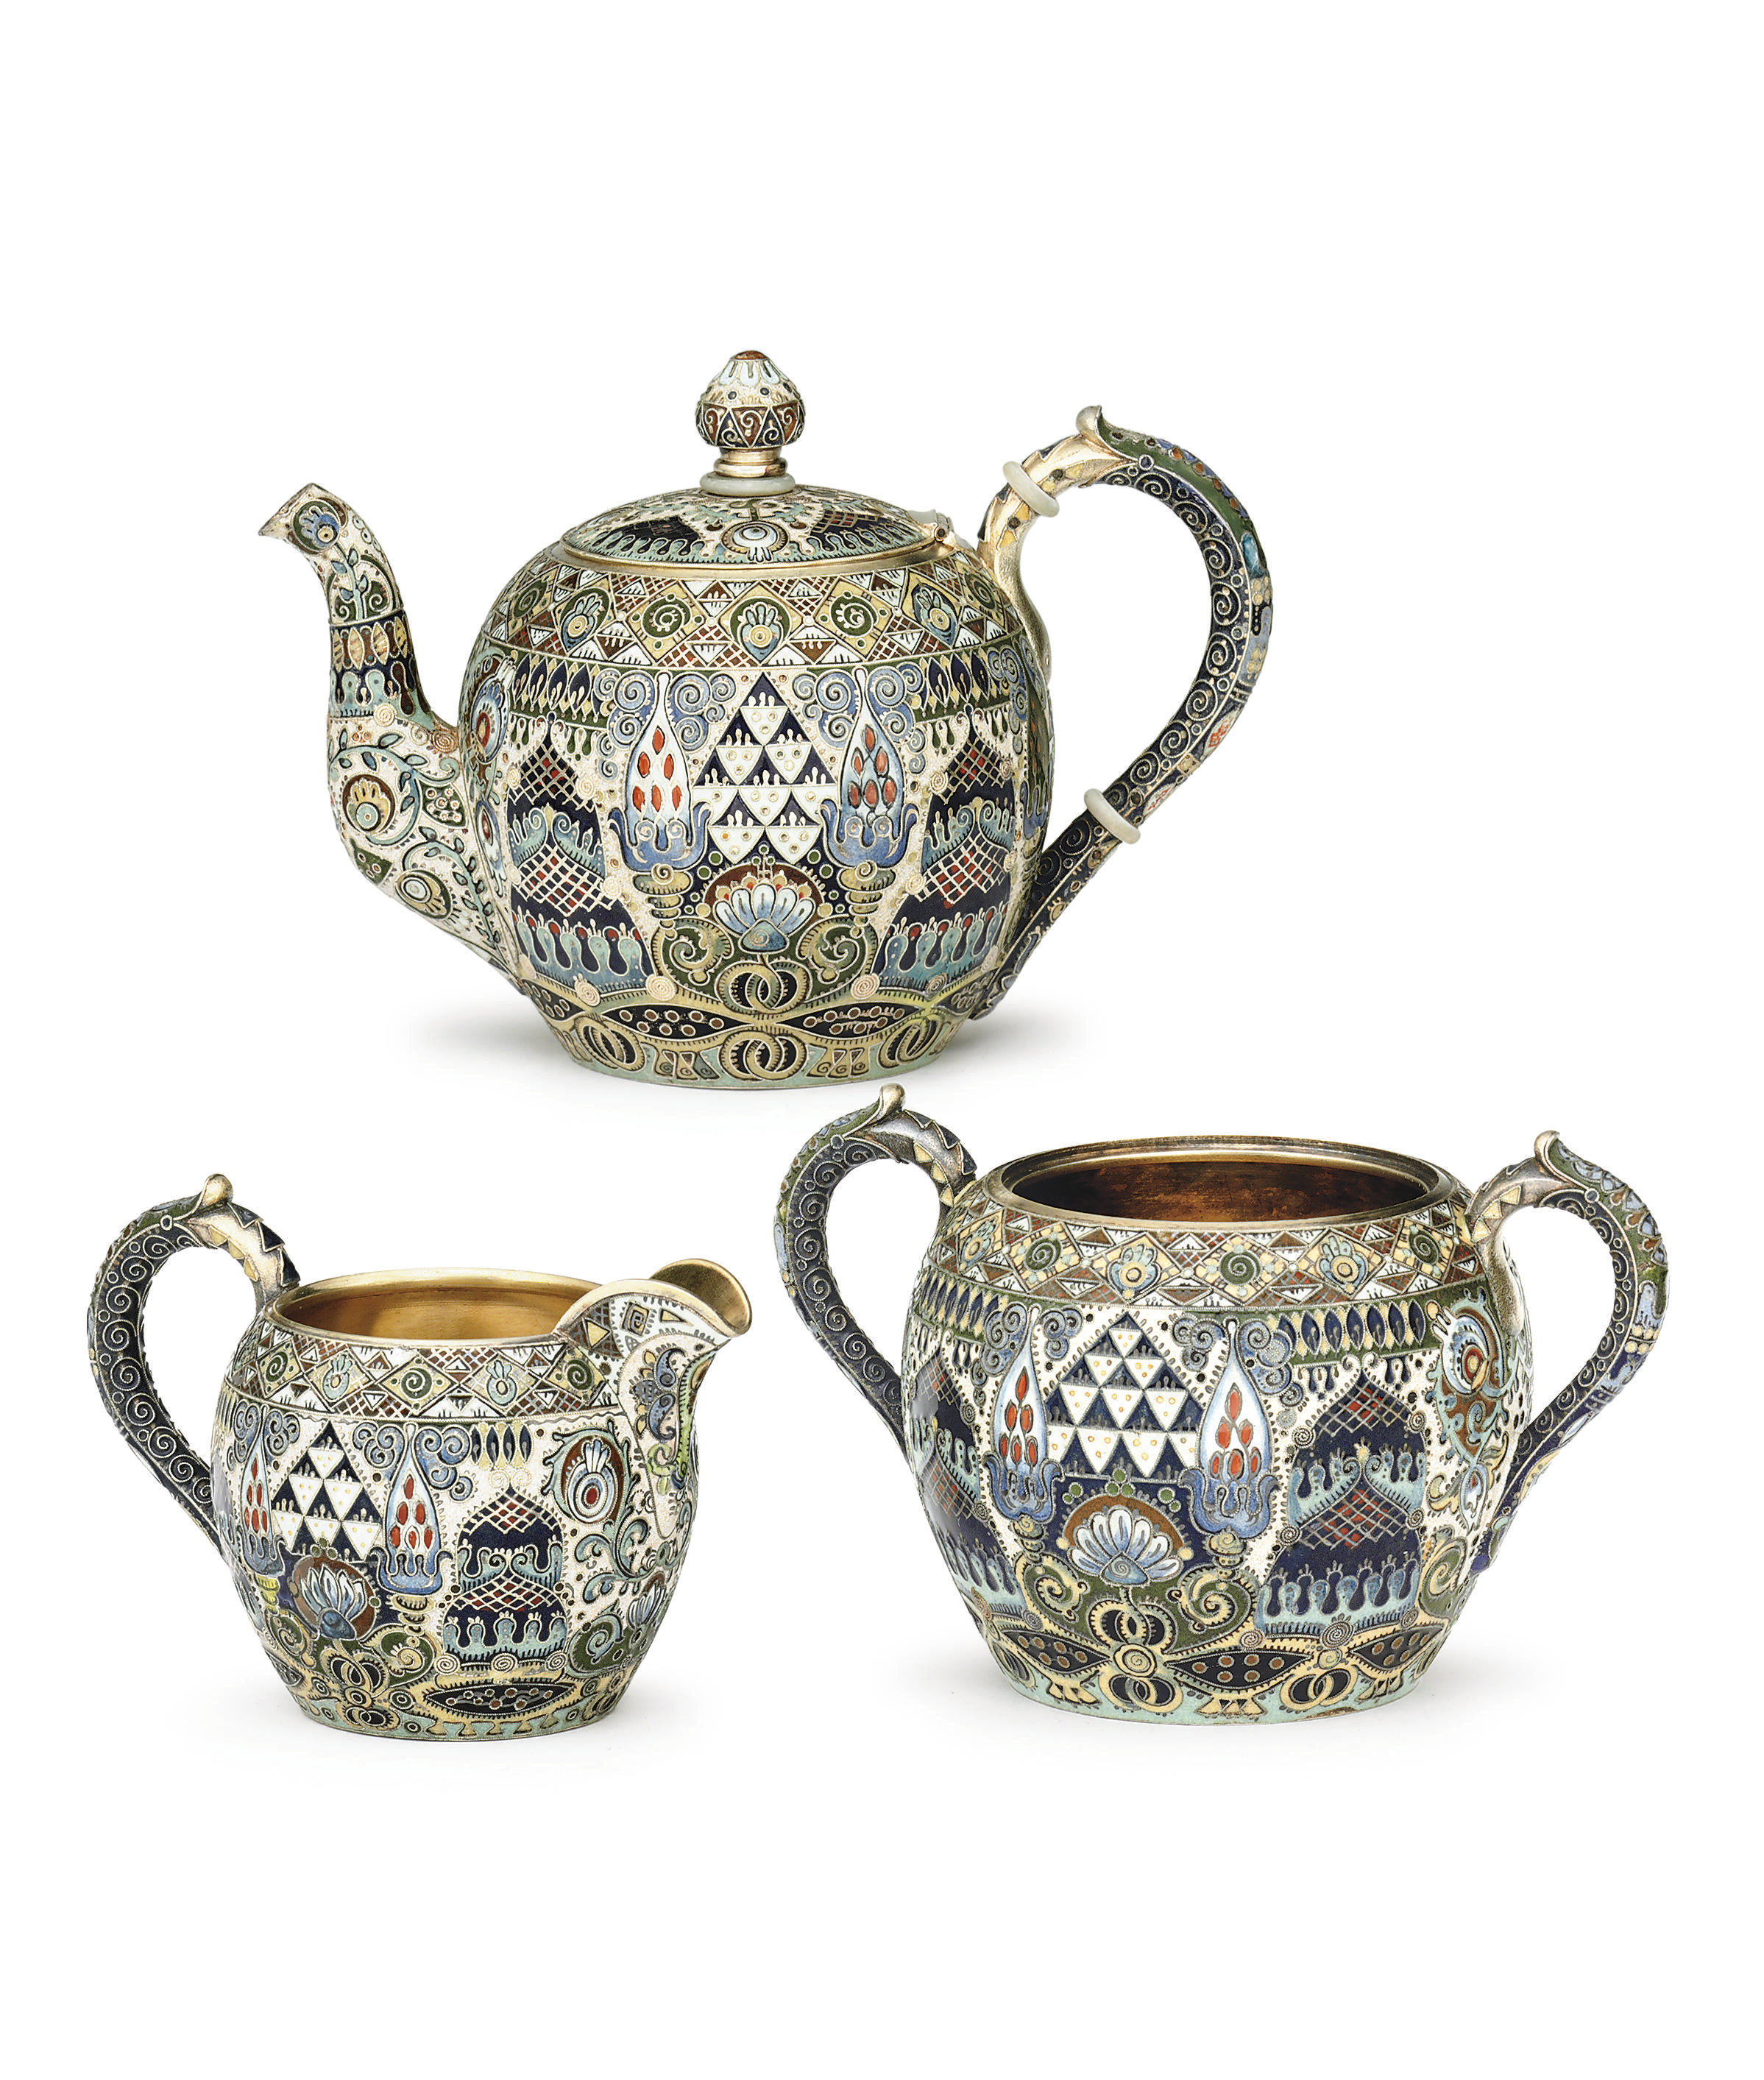 A Silver-Gilt and Cloisonné Enamel Tea Service